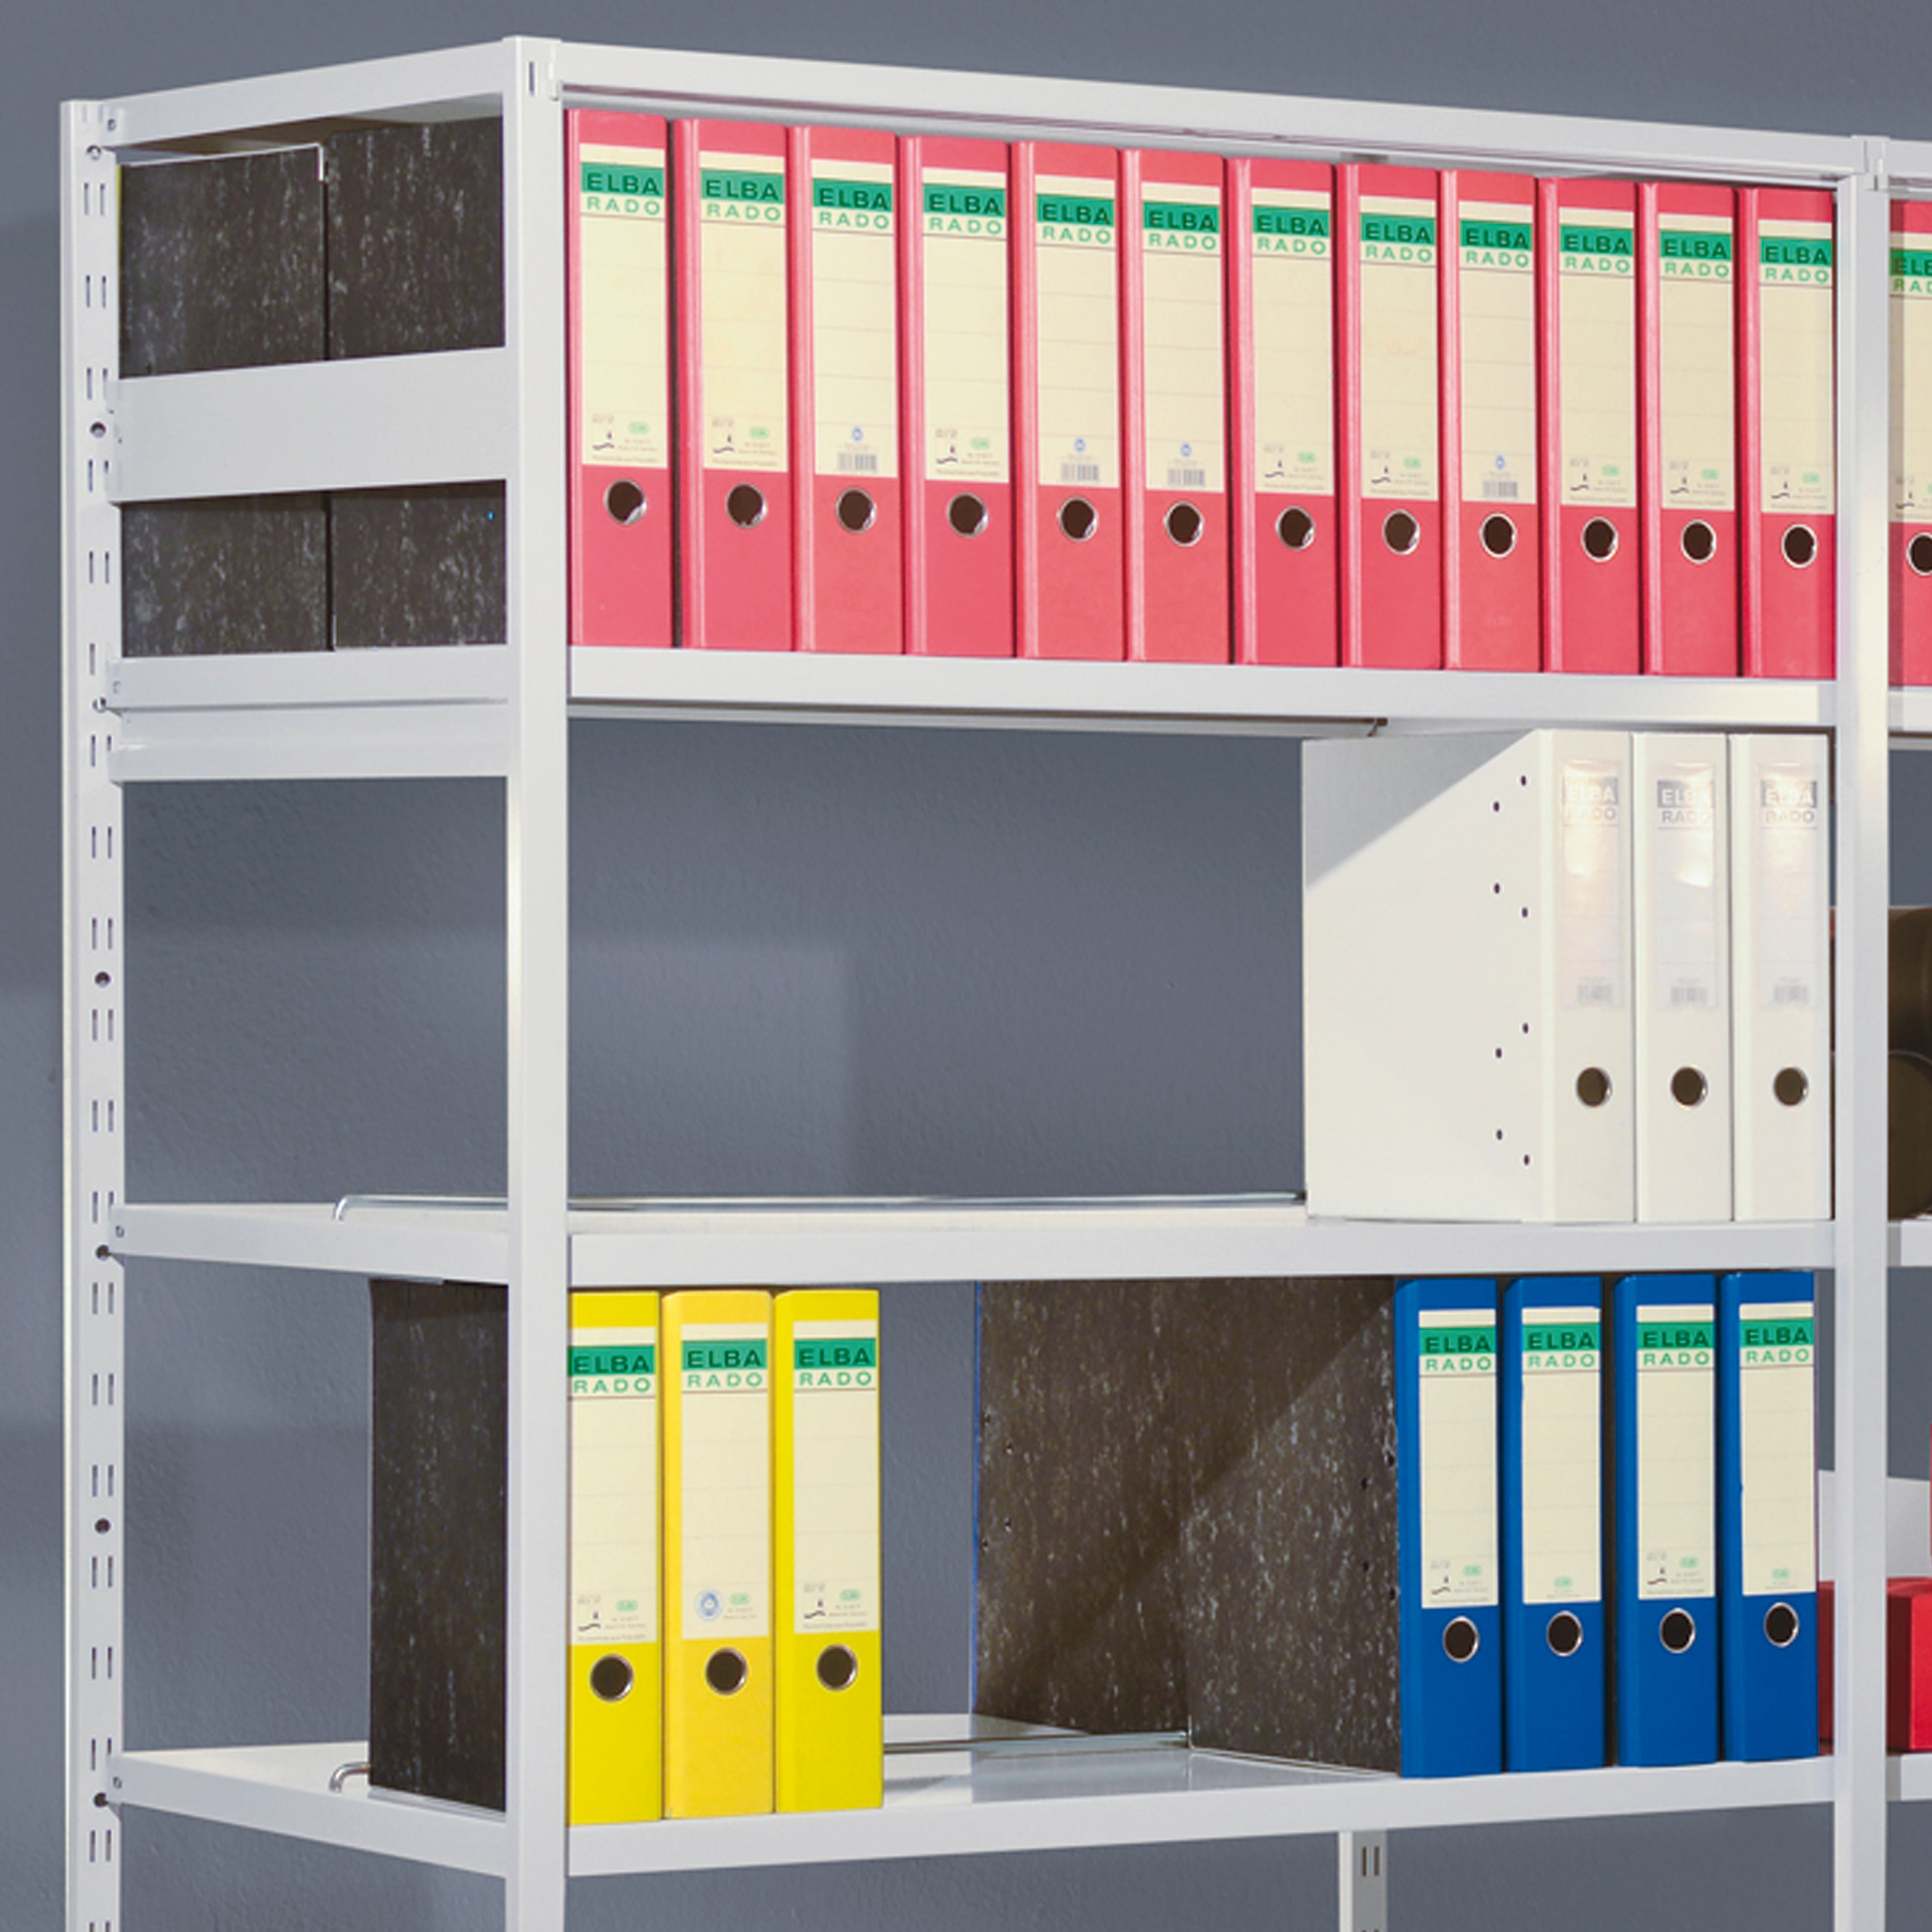 Adjustable Compartment Divider for complete shelfs